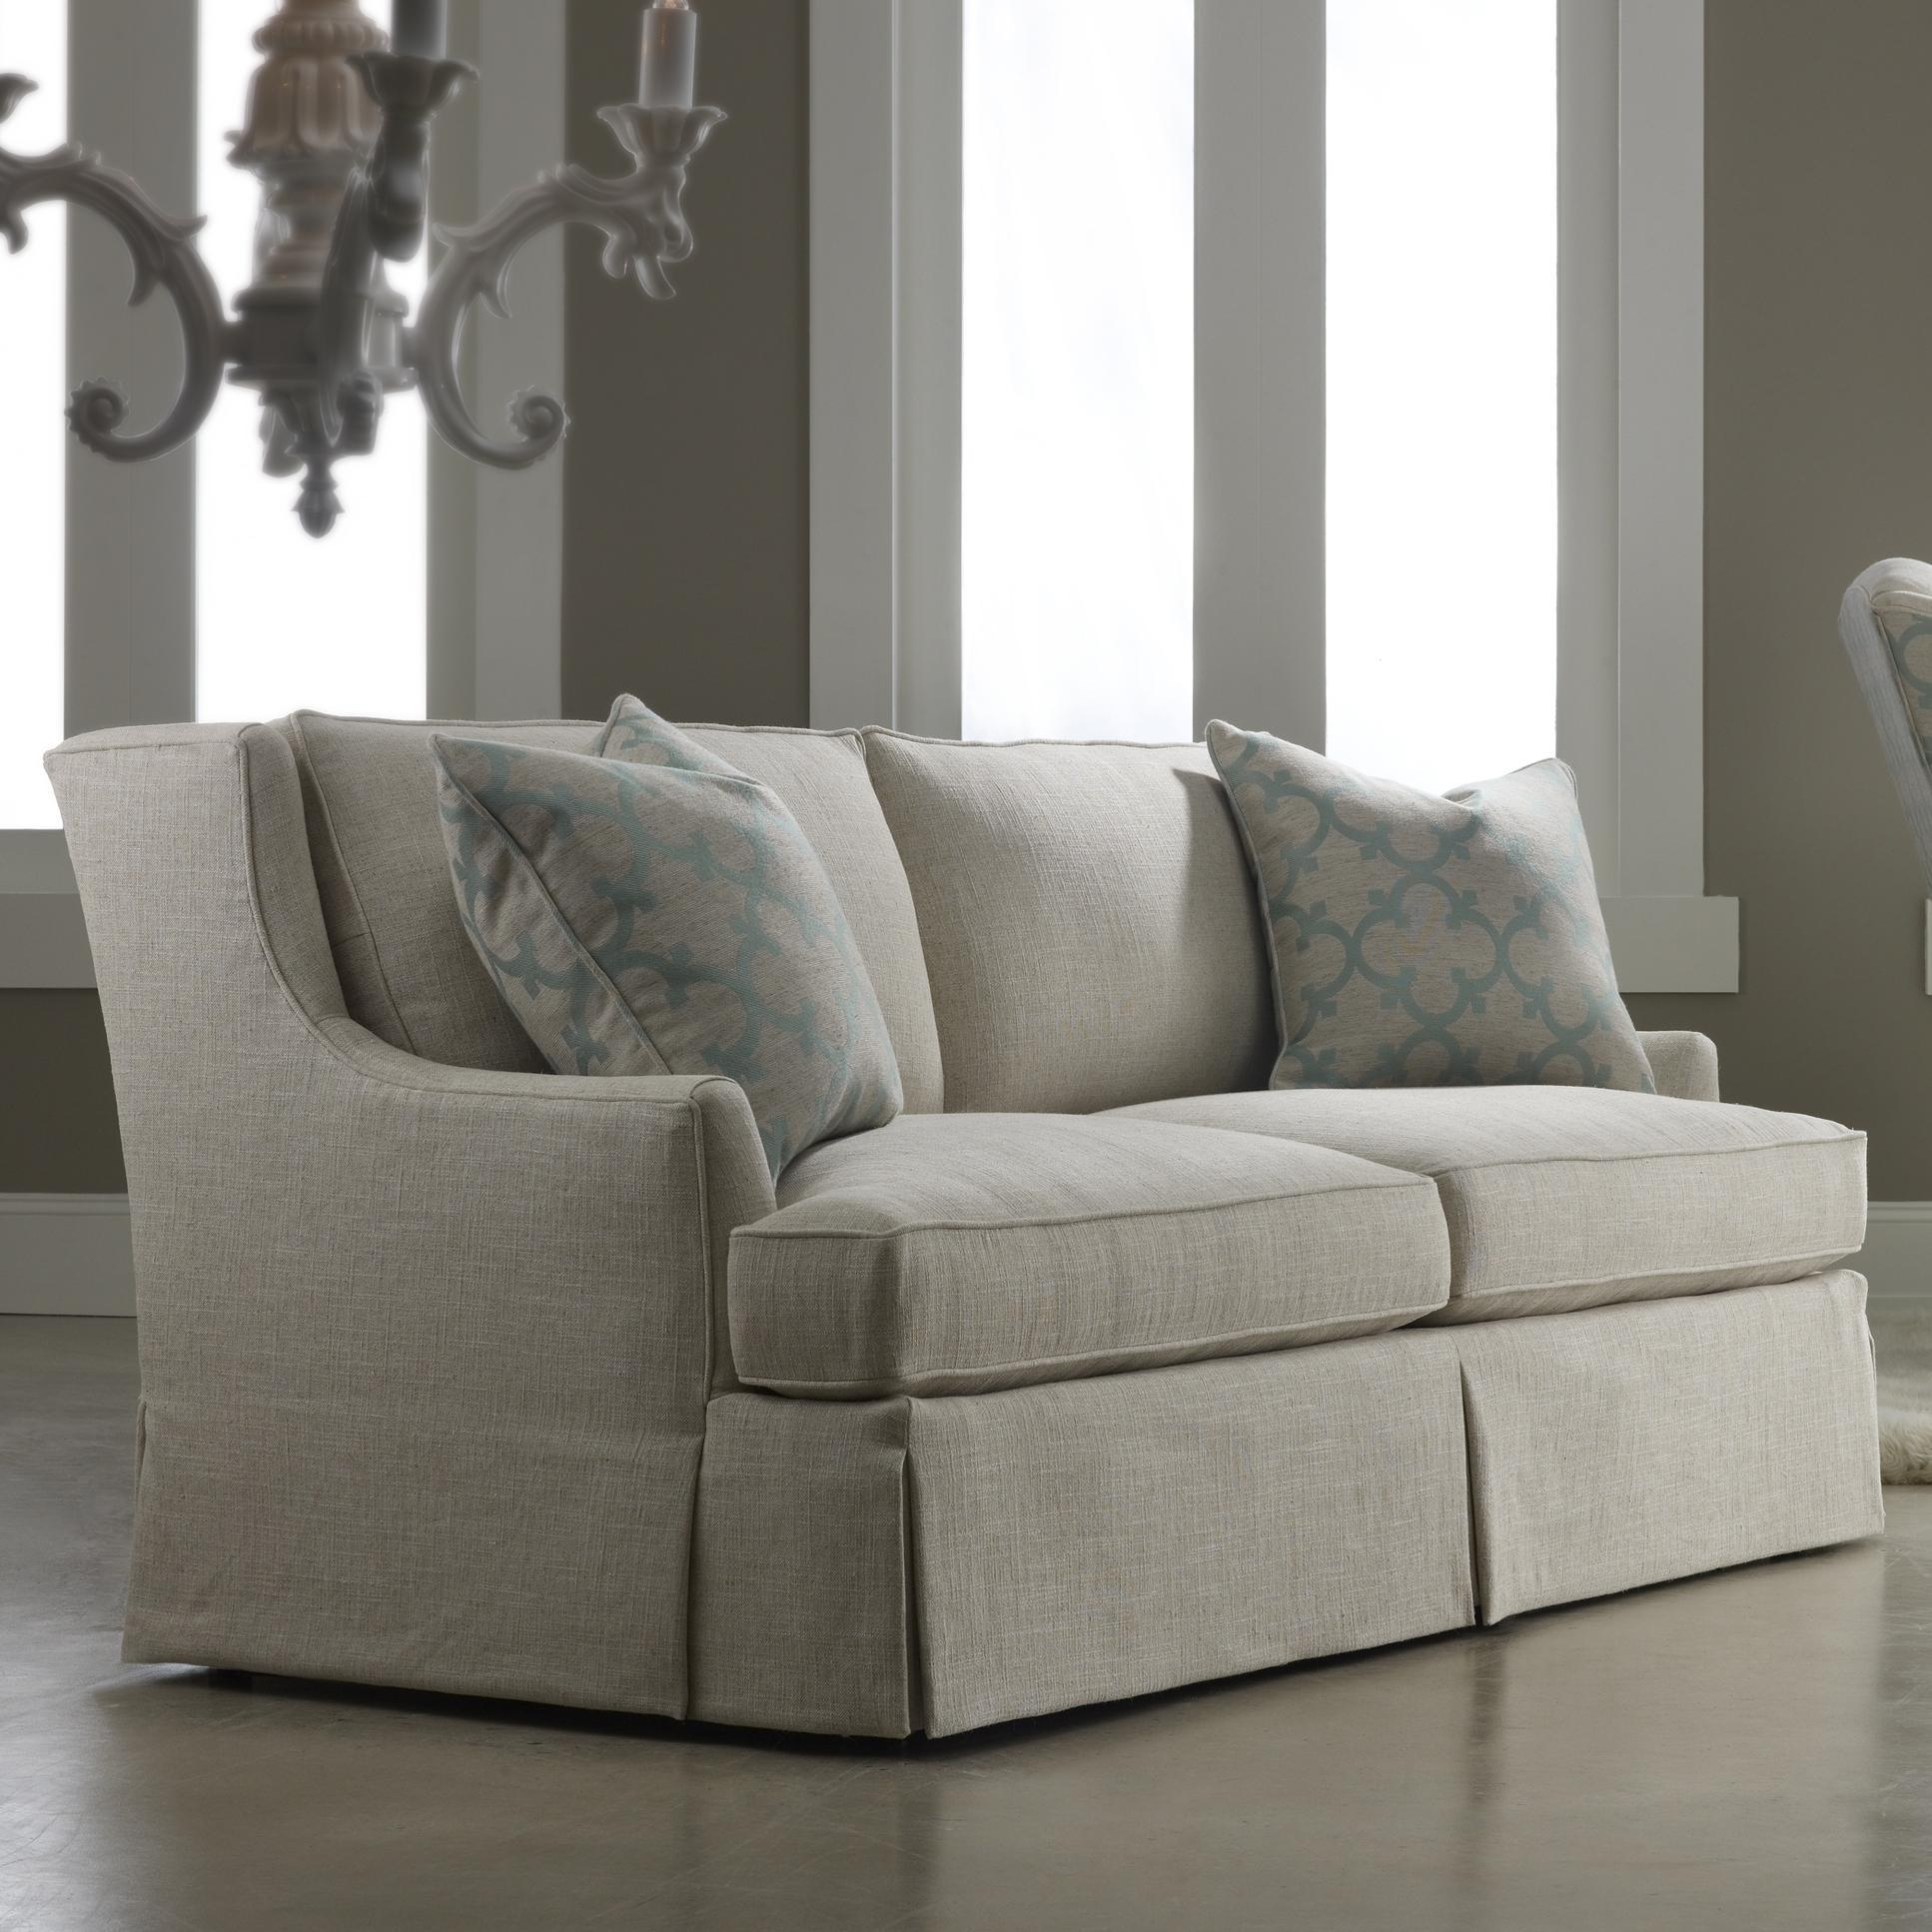 Sam Moore Sofas & Accent Sofas Store – Dealer Locator Within Sam Moore Sofas (View 18 of 20)